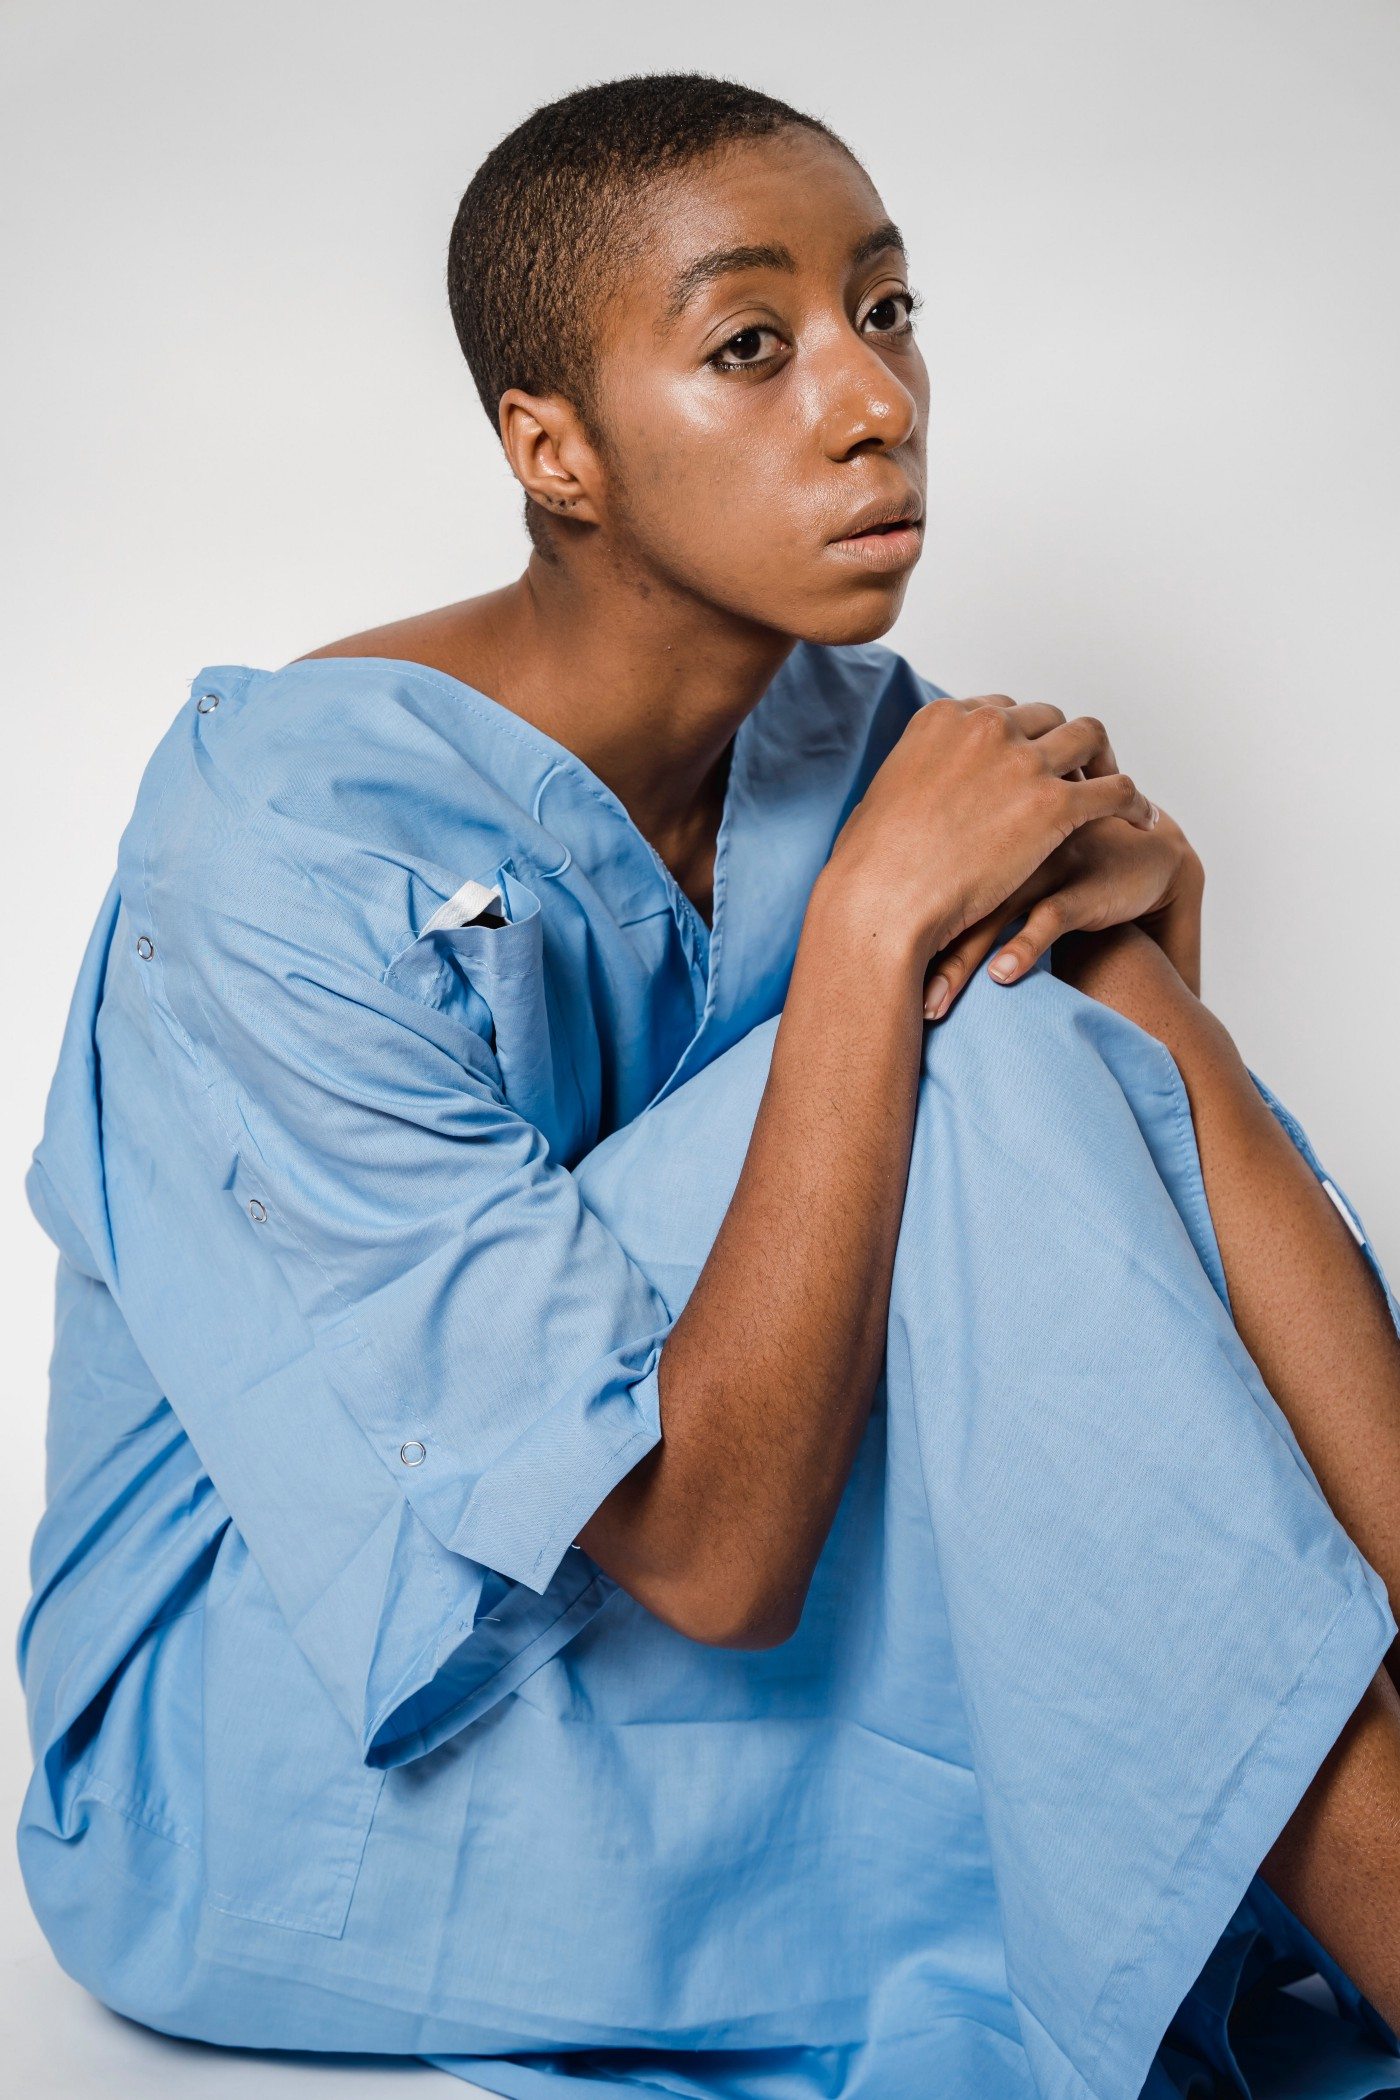 A person in a blue hospital gown sits with a dazed, distant look and their hands crossed on one bent knee.